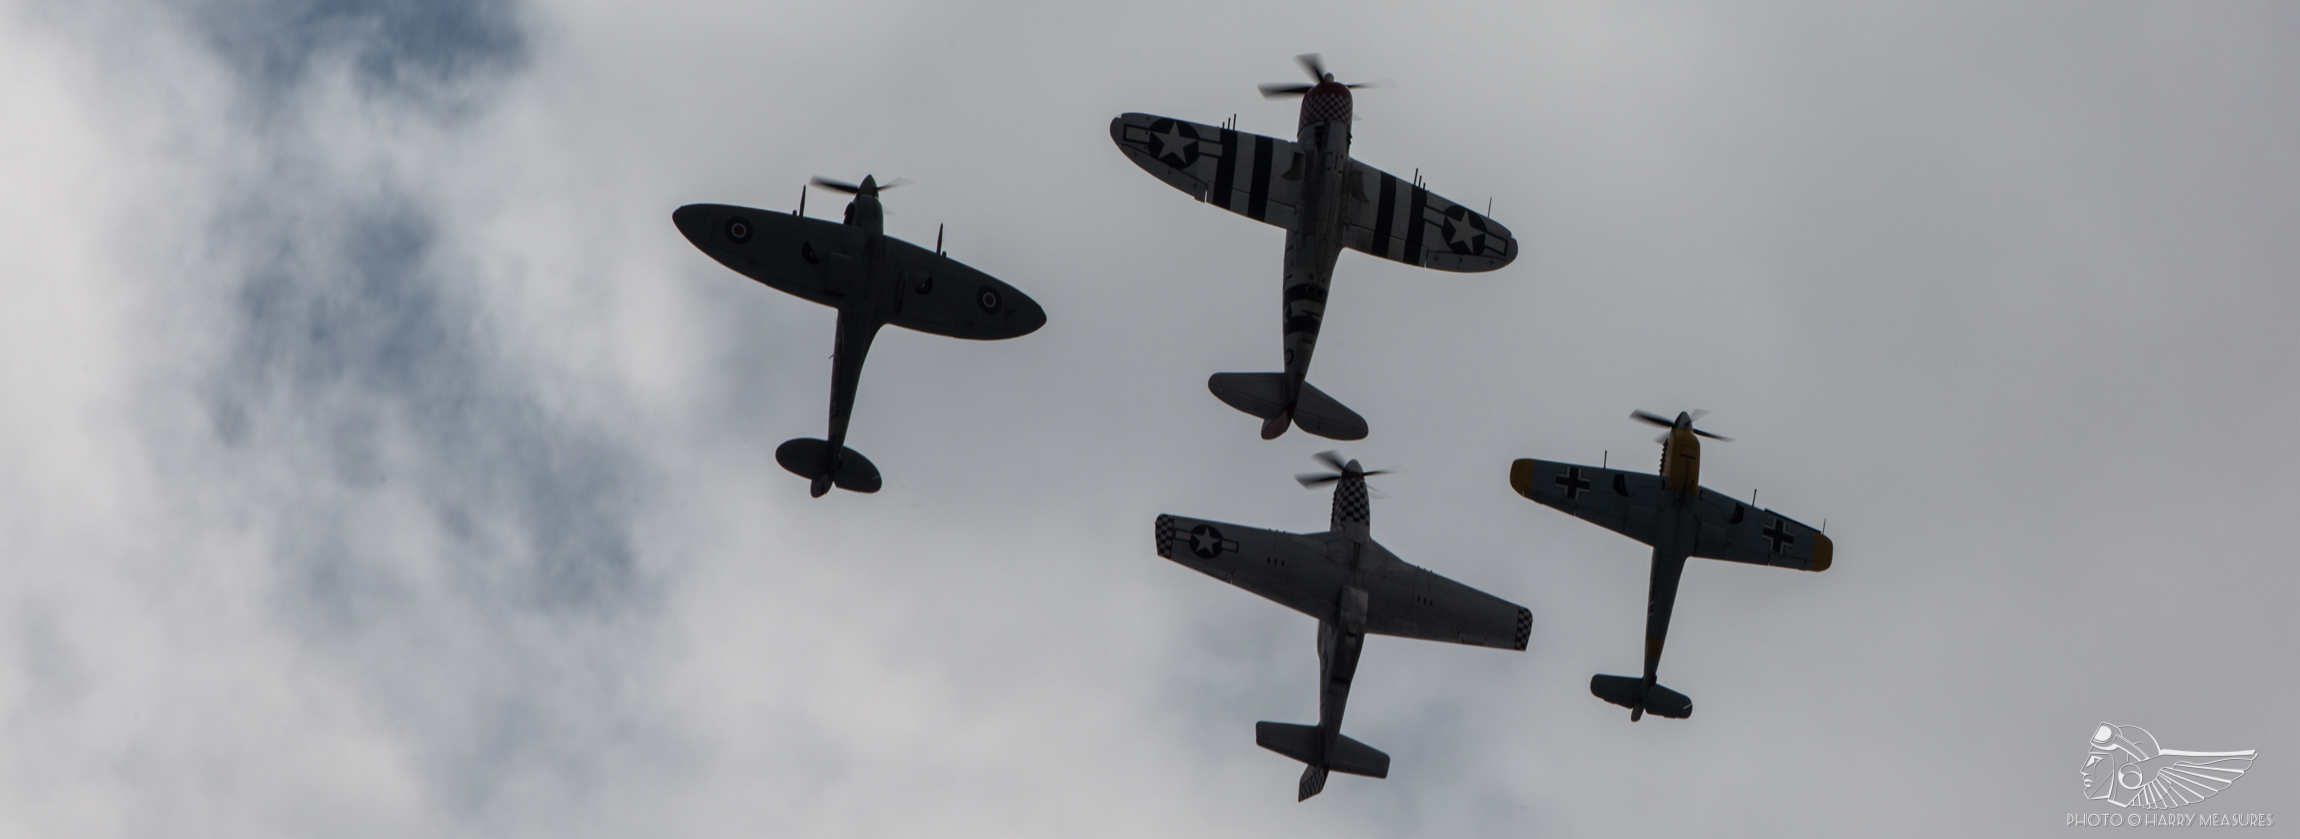 Flying Legends showcases multiple debuts